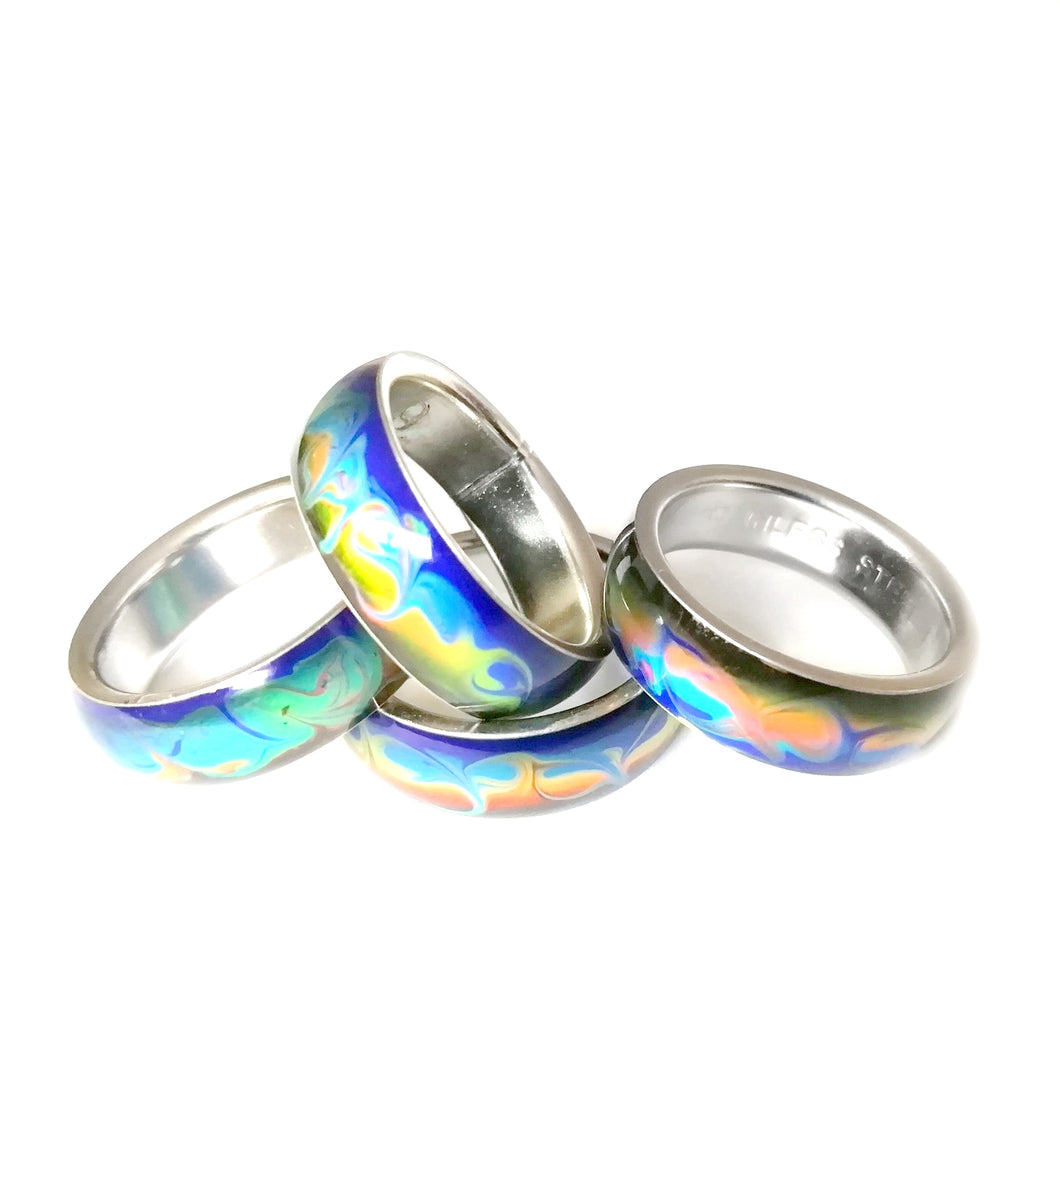 mood rings with swirl marble patterns in stainless steel